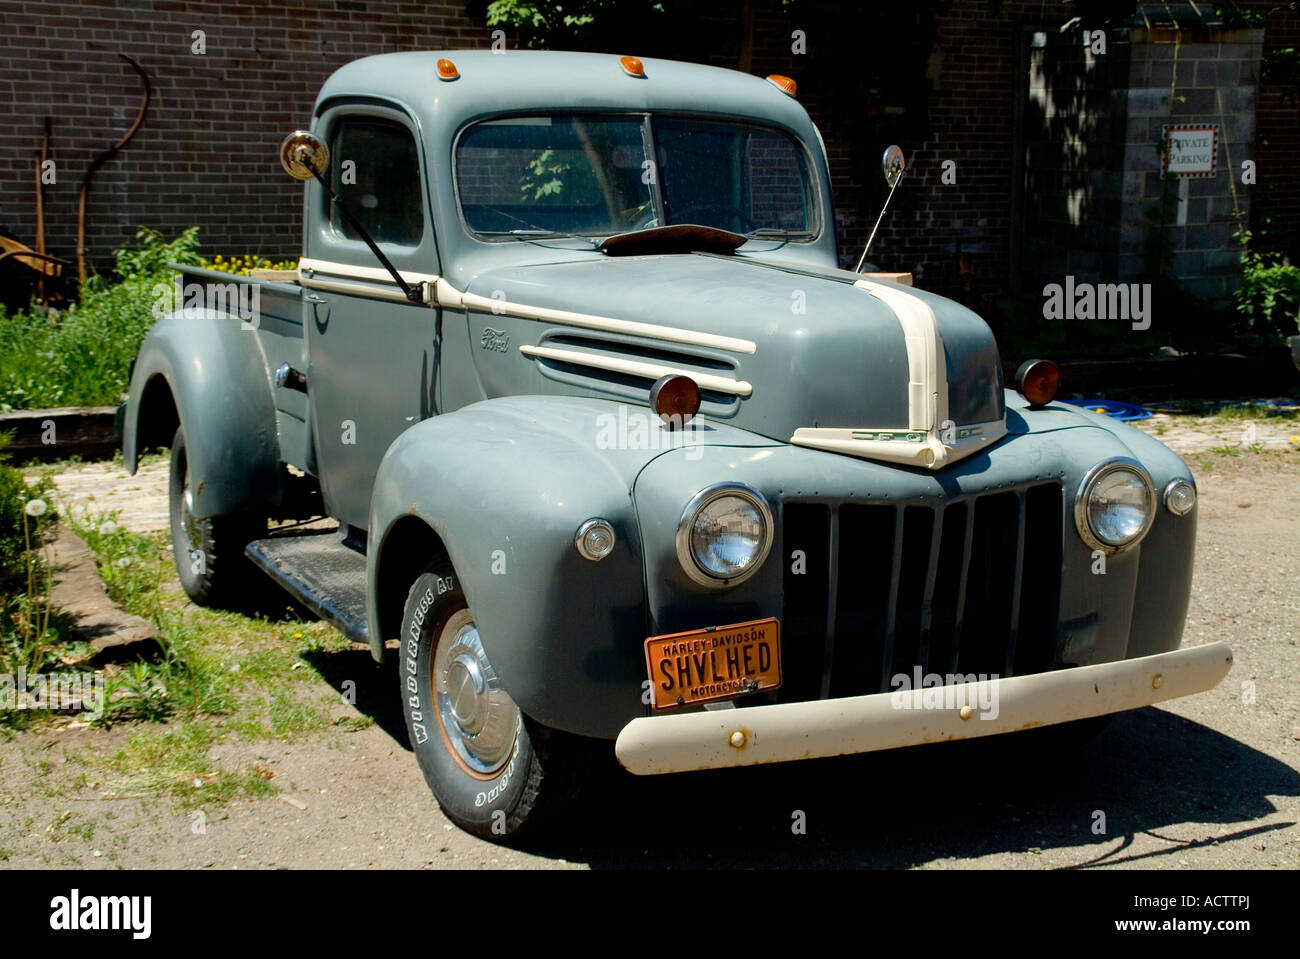 AN OLD CLASSIC FORD CHEVY TRUCK WITH HARLEY DAVIDSON SHVLHED LICENSE ...